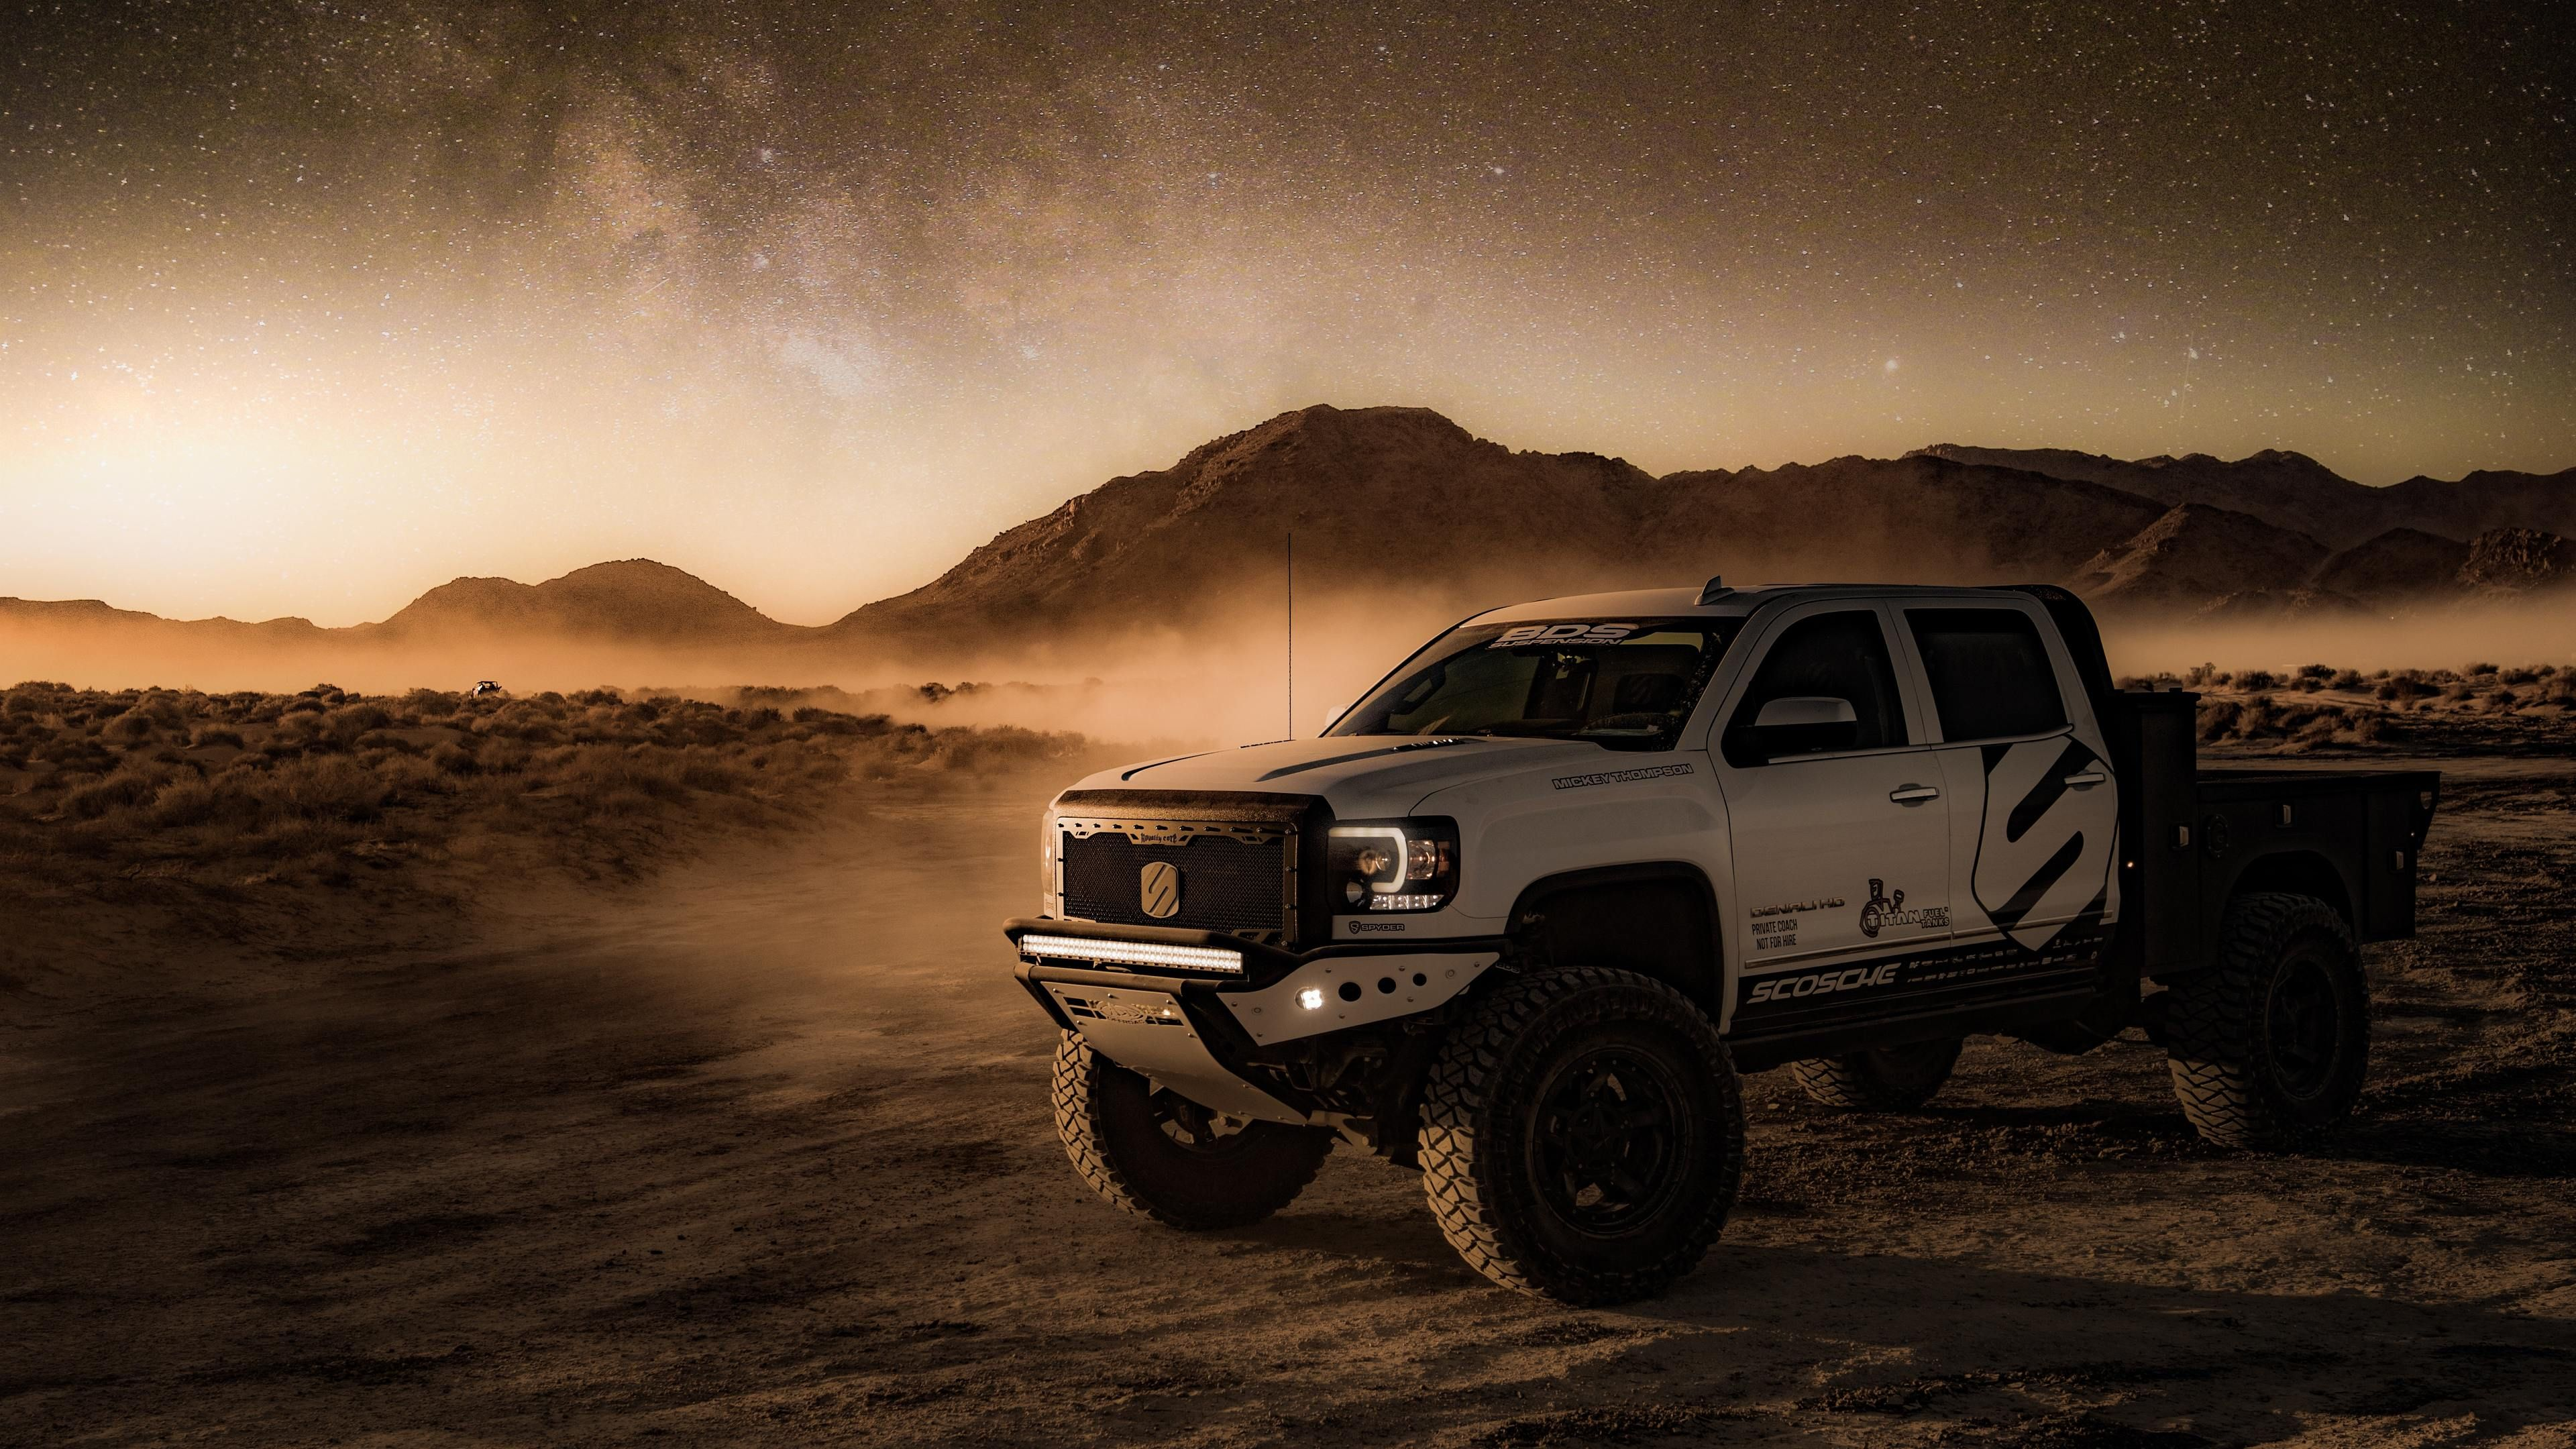 Wallpaper 4k 4x4 Offroad Vehicle In Desert 4k Wallpapers 5k